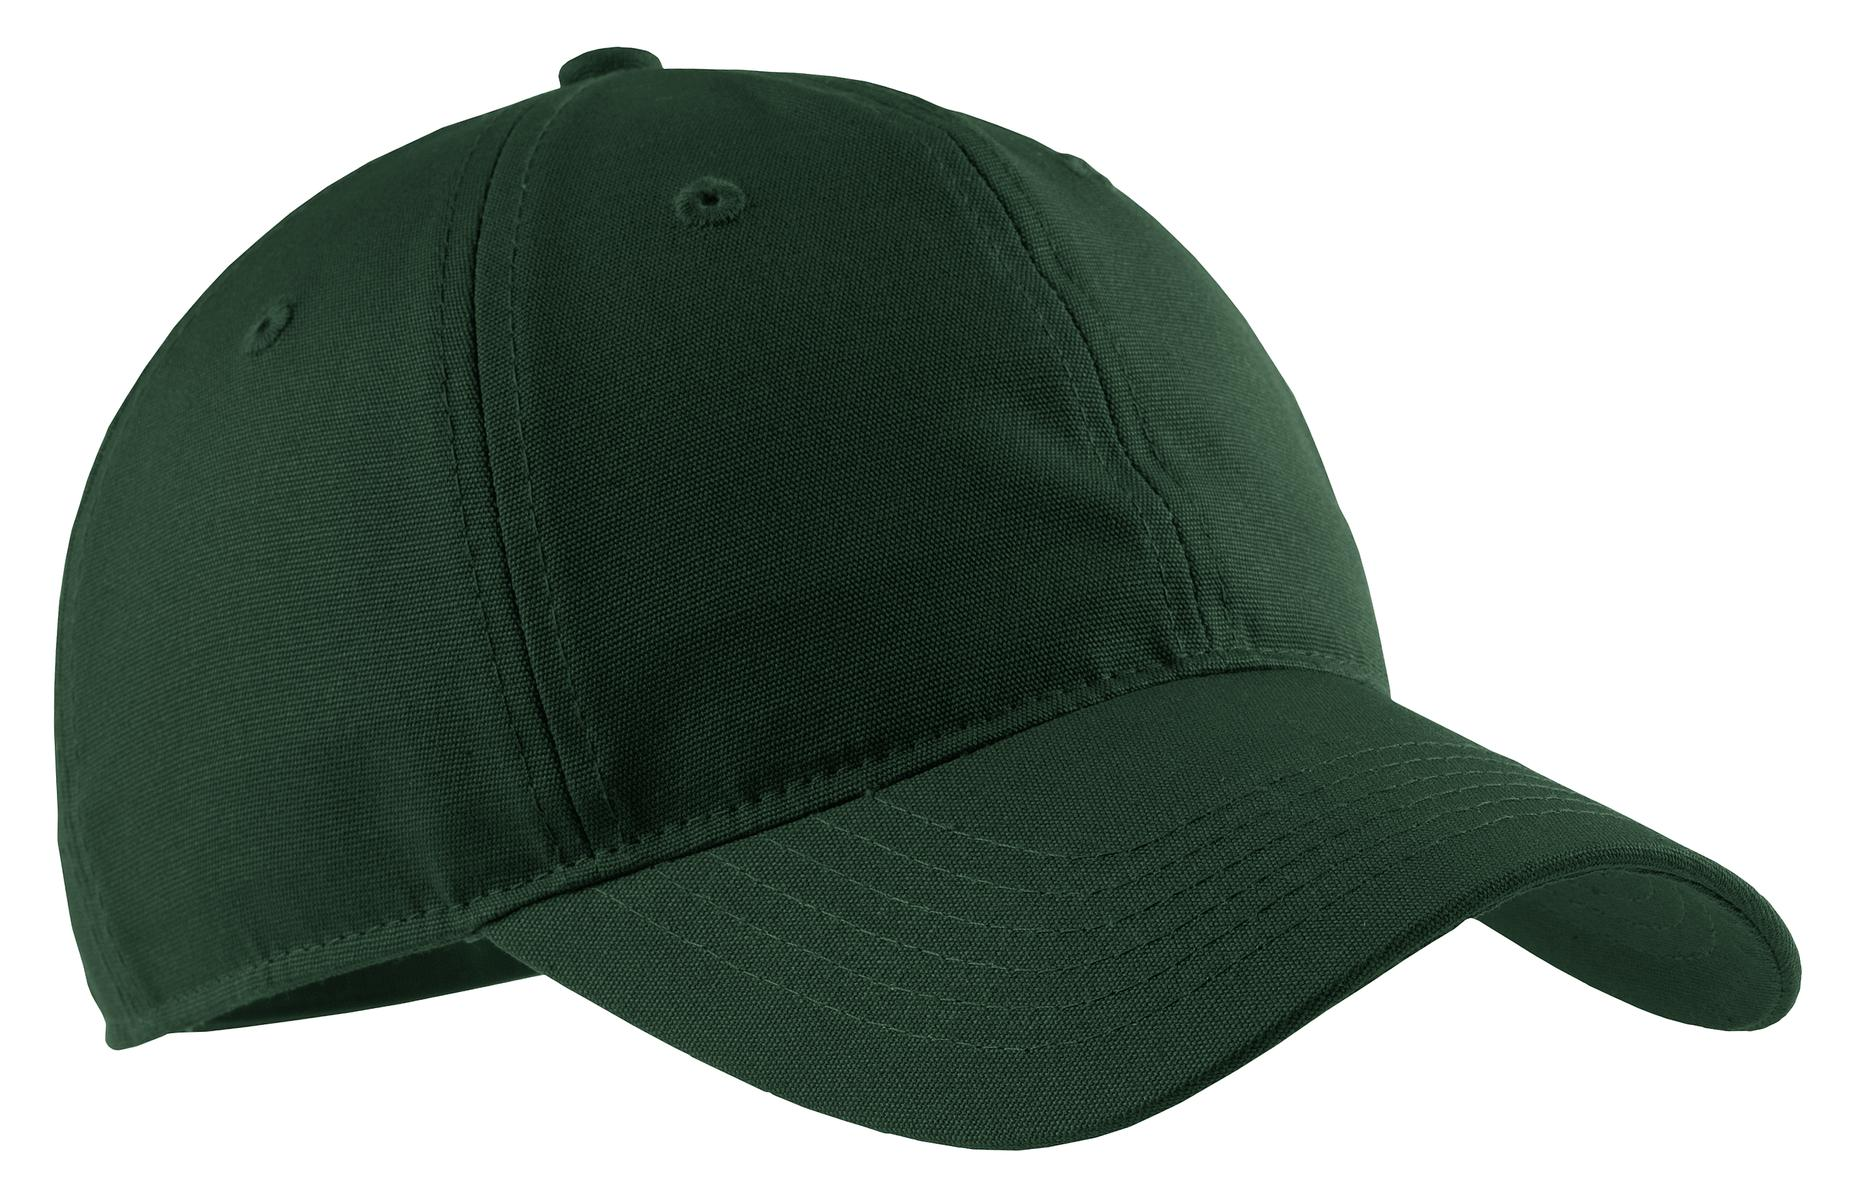 Port & Company® - Soft Brushed Canvas Cap.-SM_PAC